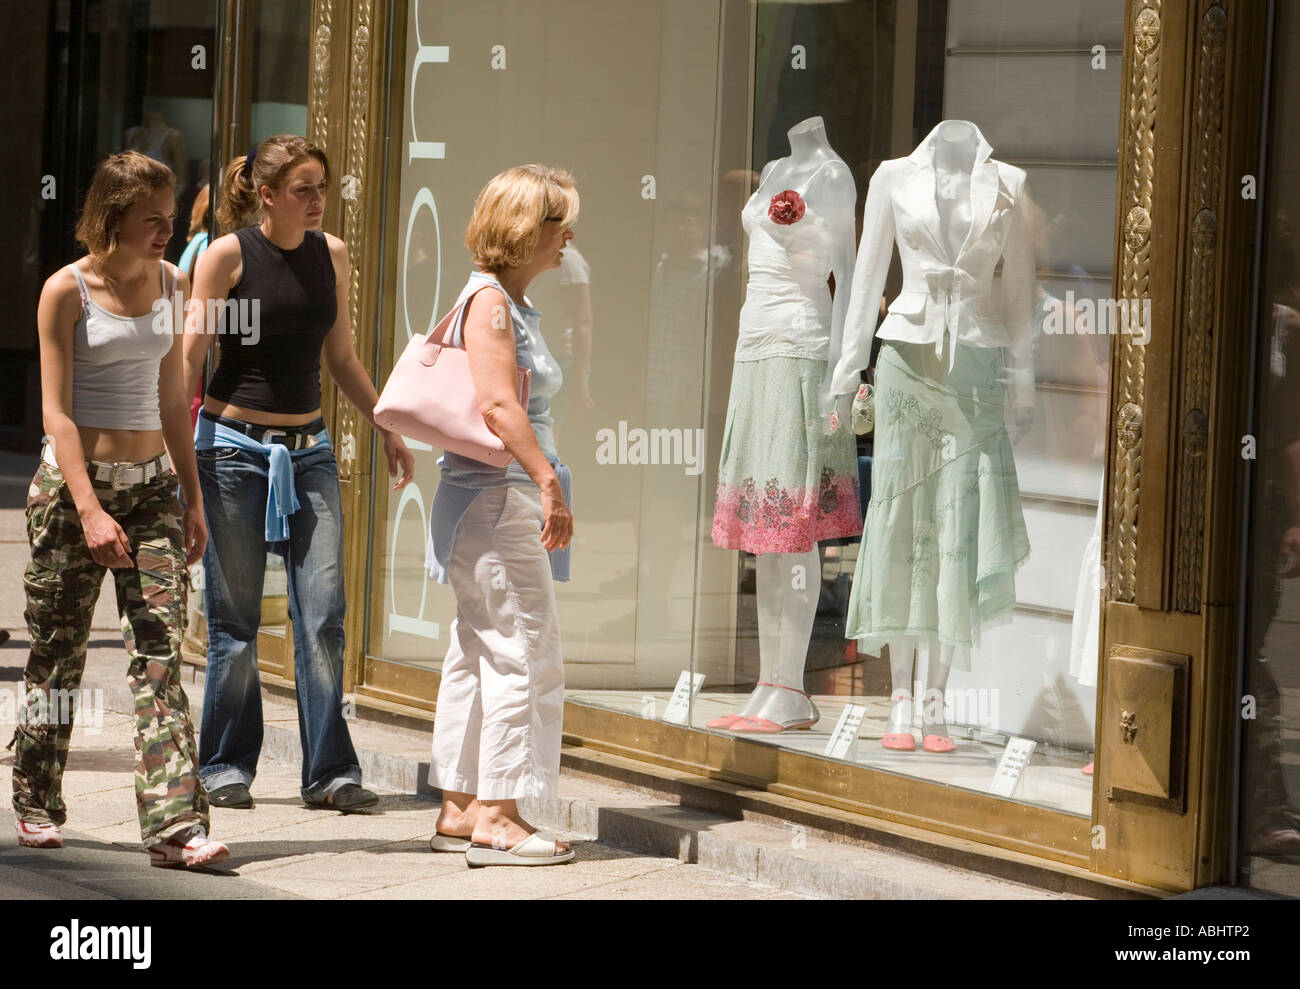 44de22fca653c Women in front of a boutique shop window at Vaci Street Pest Budapest  Hungary